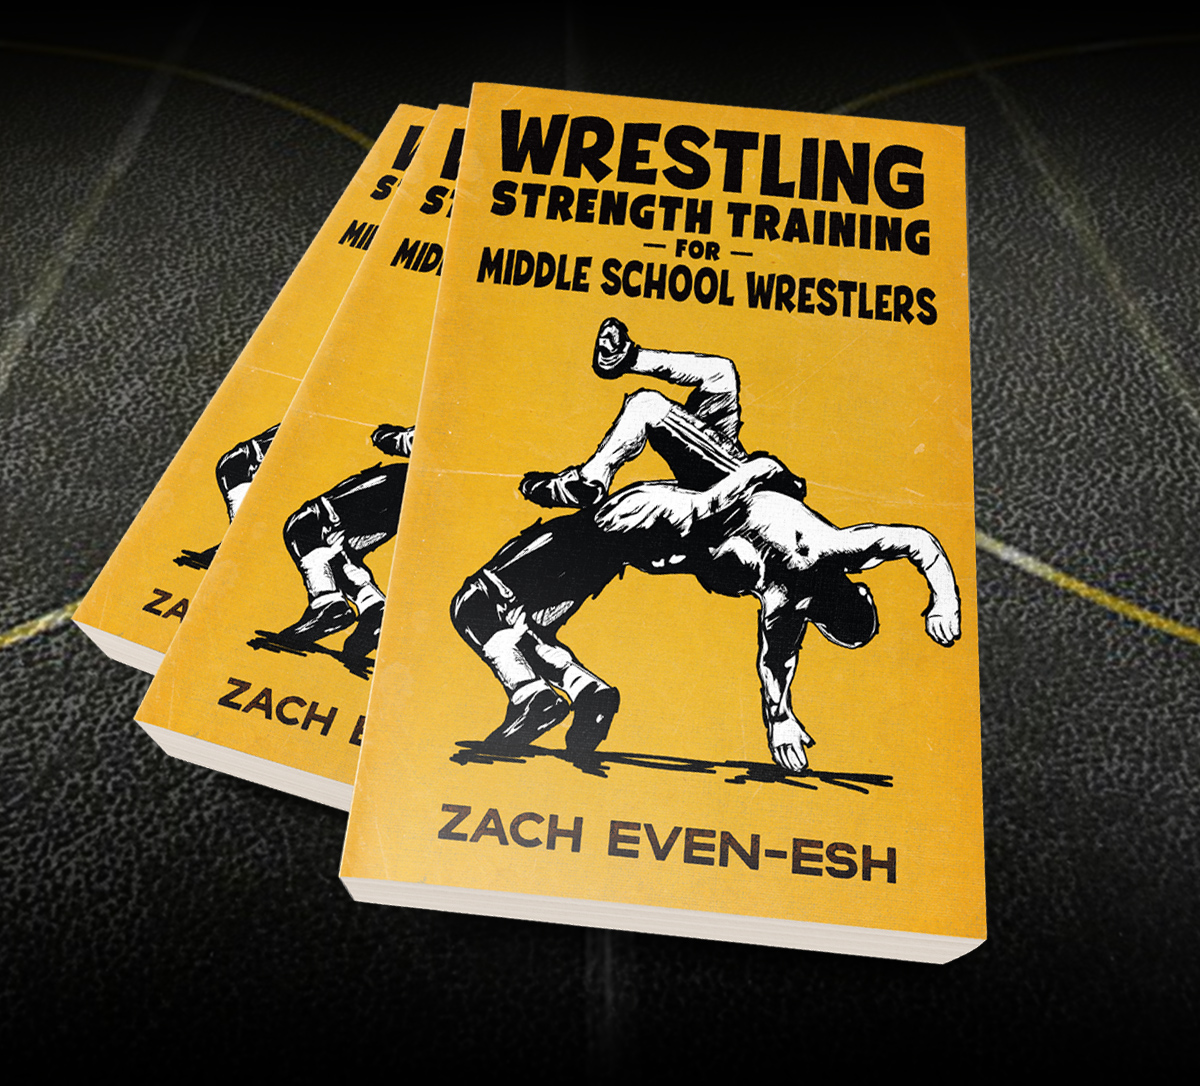 Wrestling Strength Training For Middle School Wrestlers